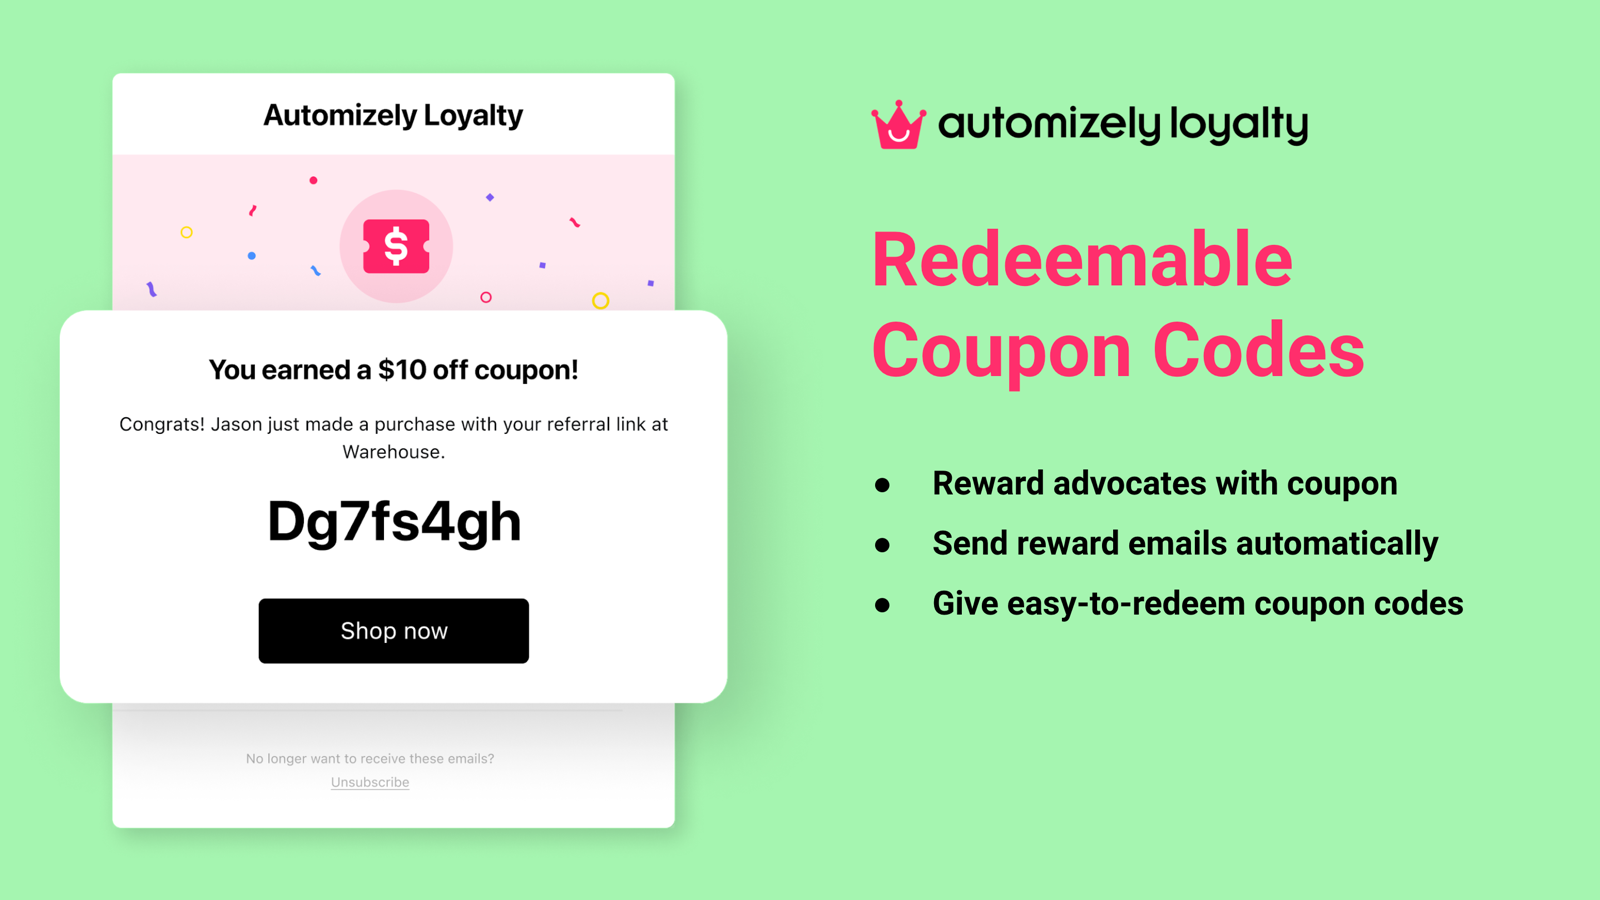 Redeemable Coupon Codes